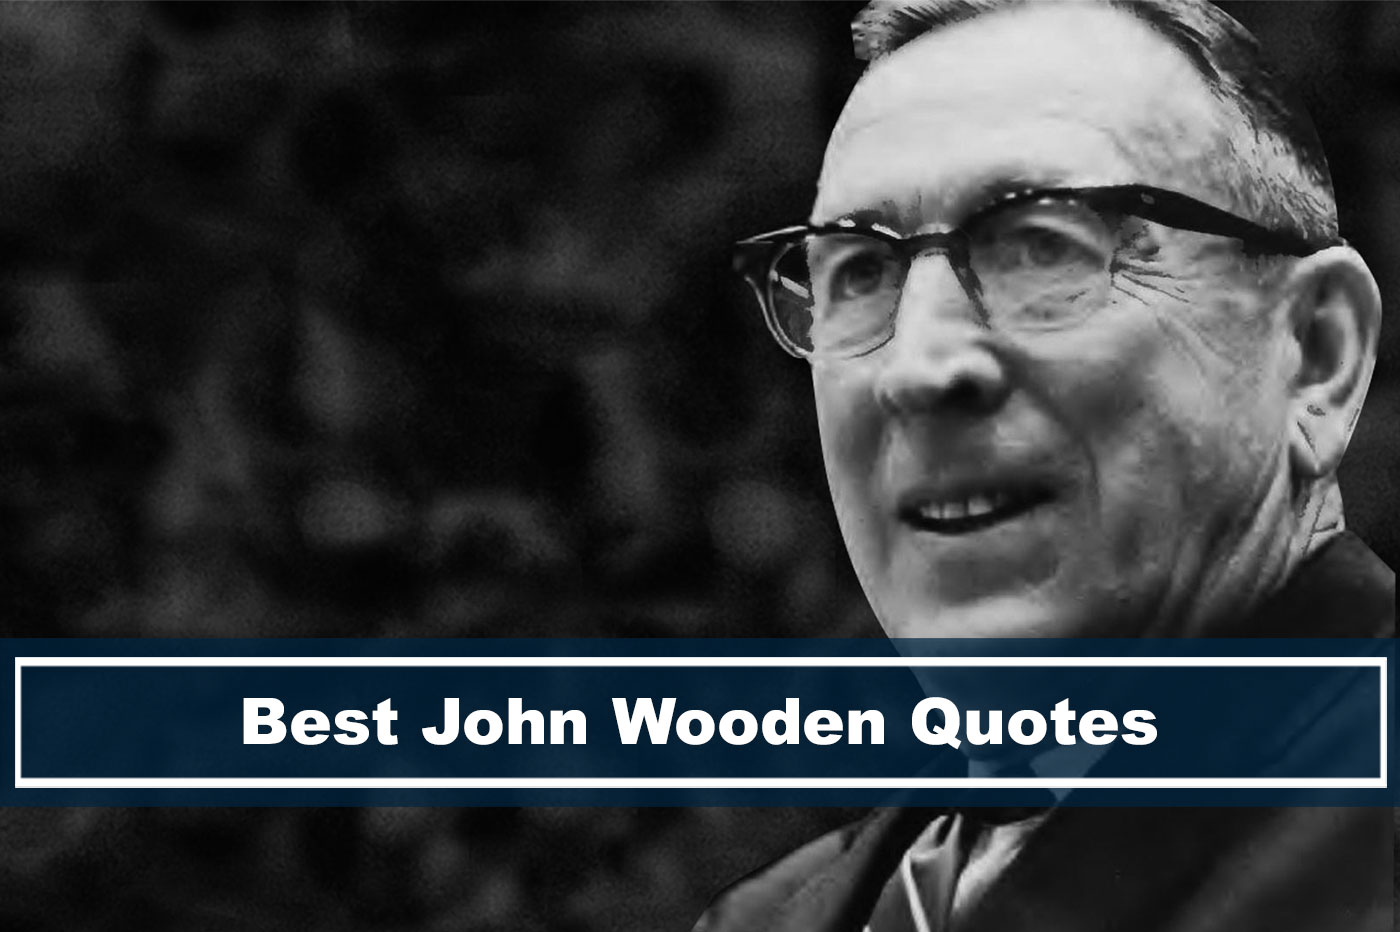 John Wooden quotes to inspire about success, teamwork, and leadership